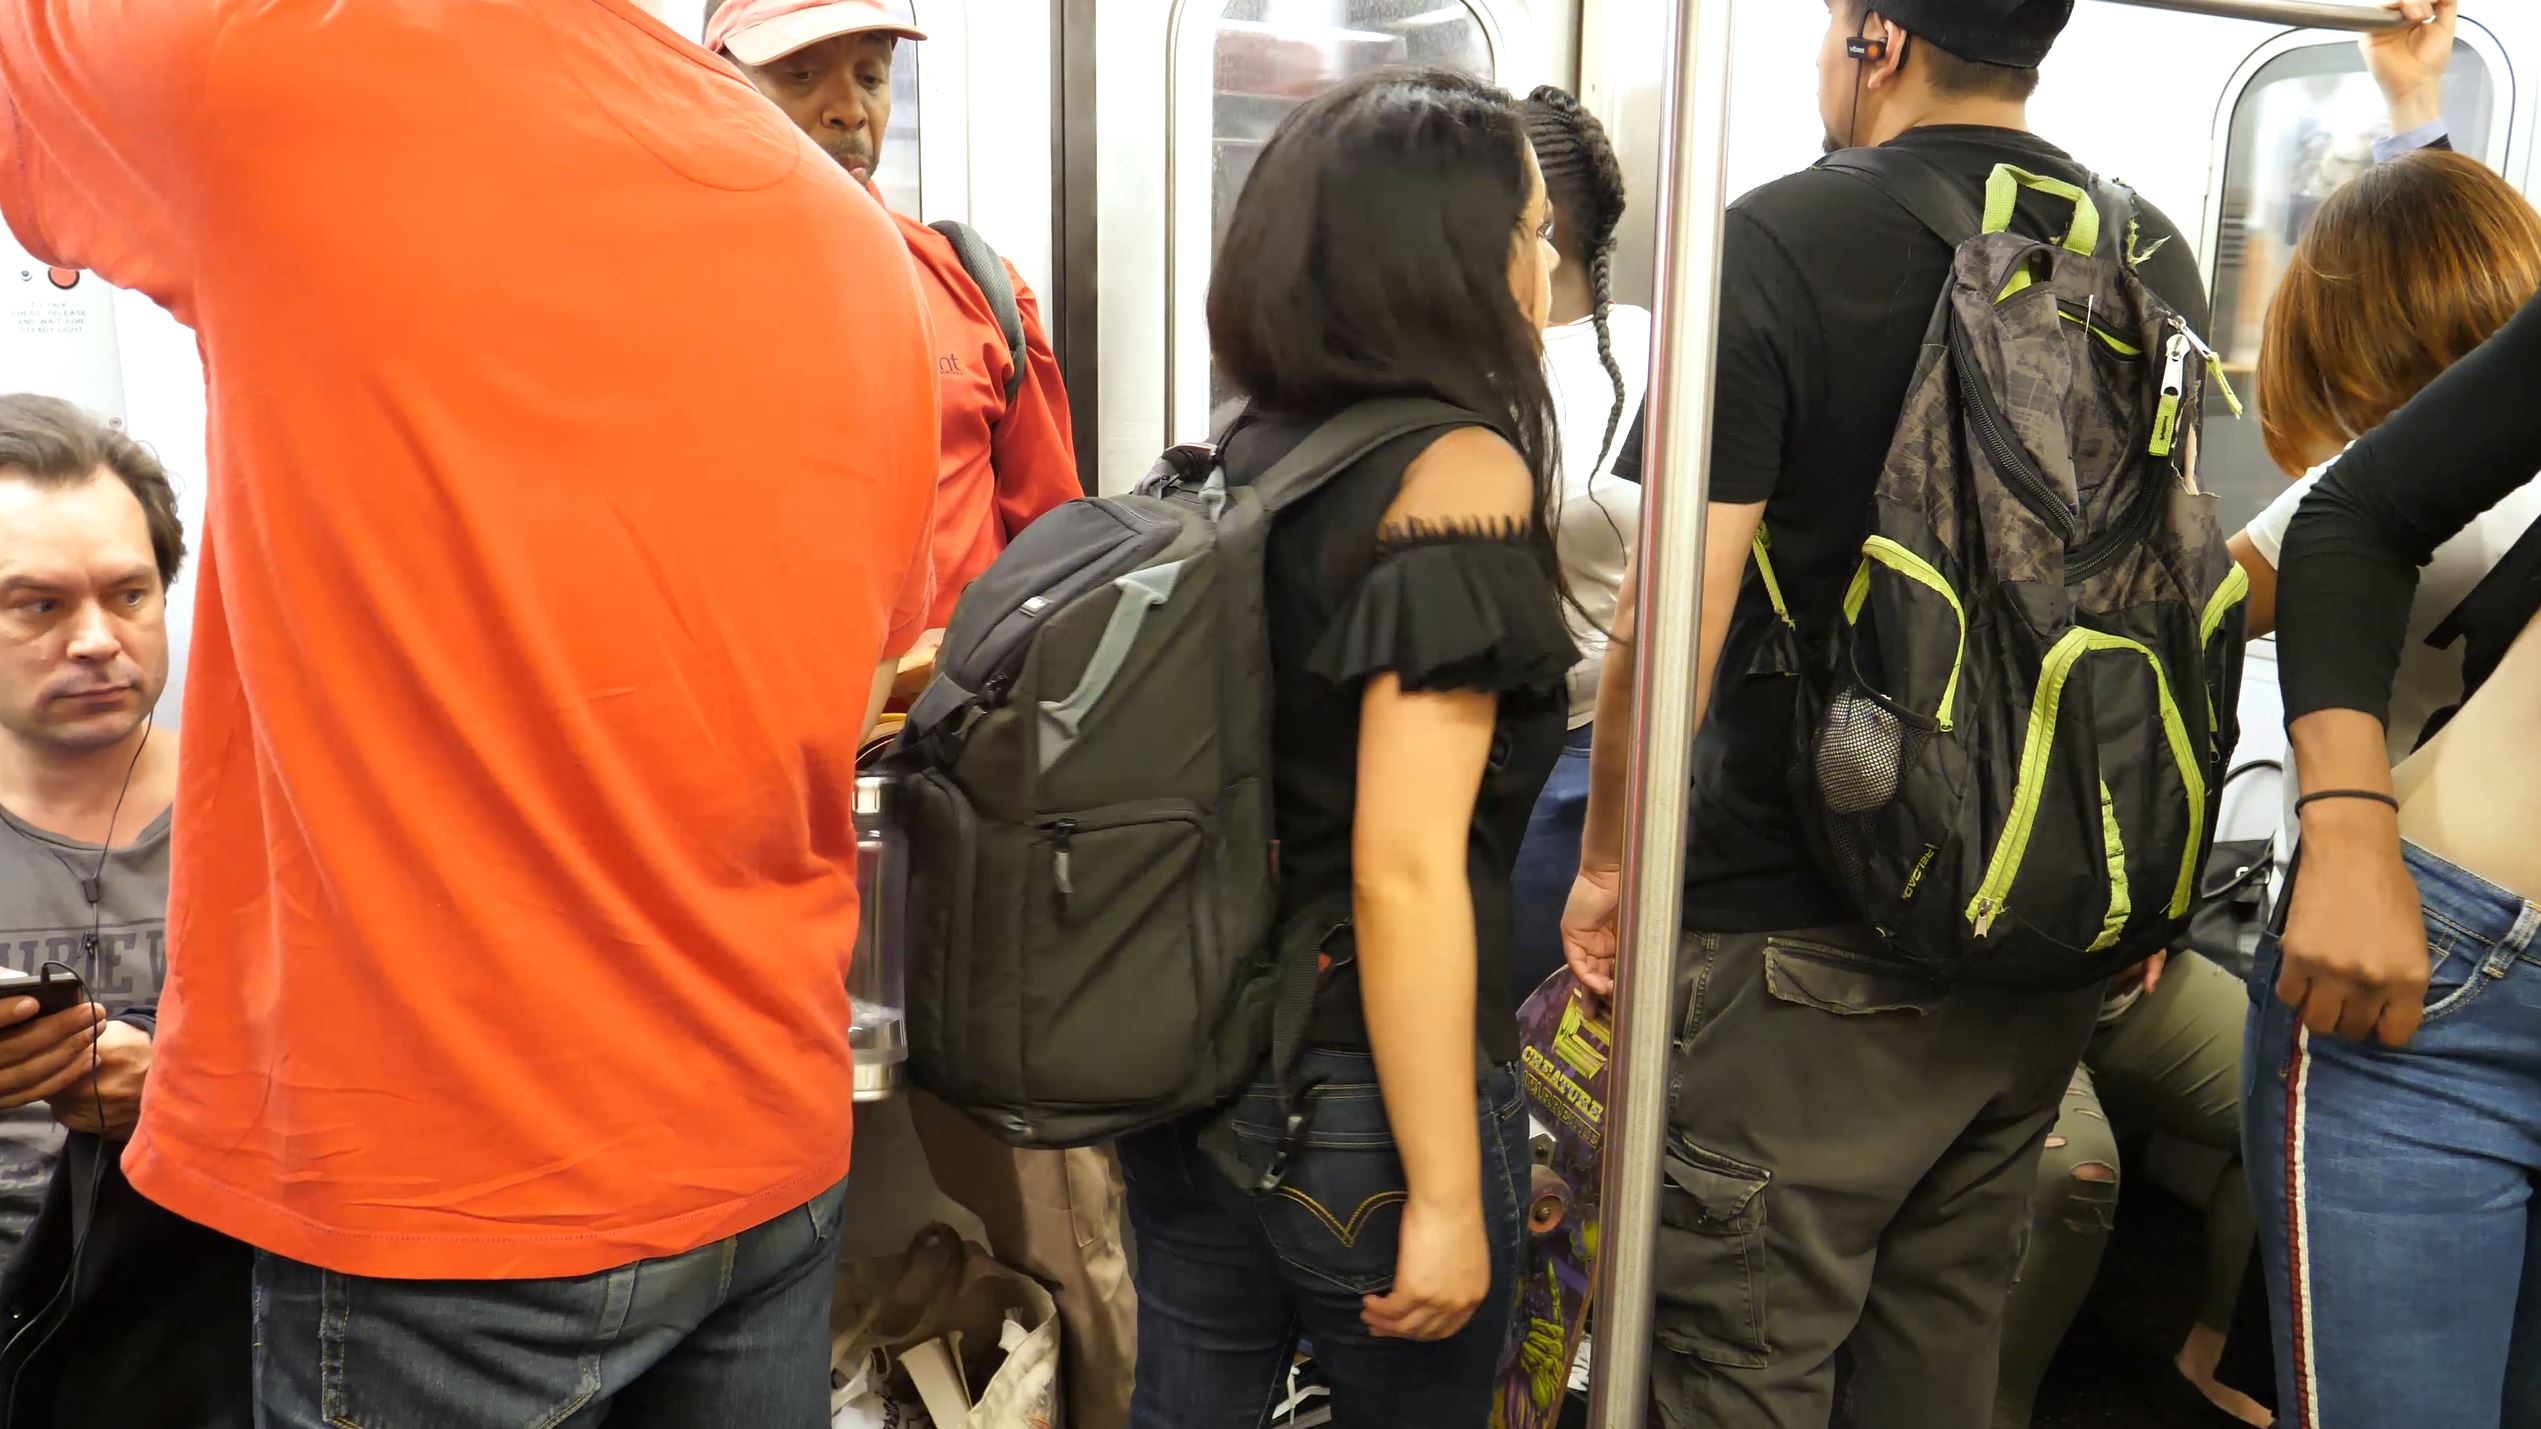 25 Things You Need to Know About the NYC Subway backpack